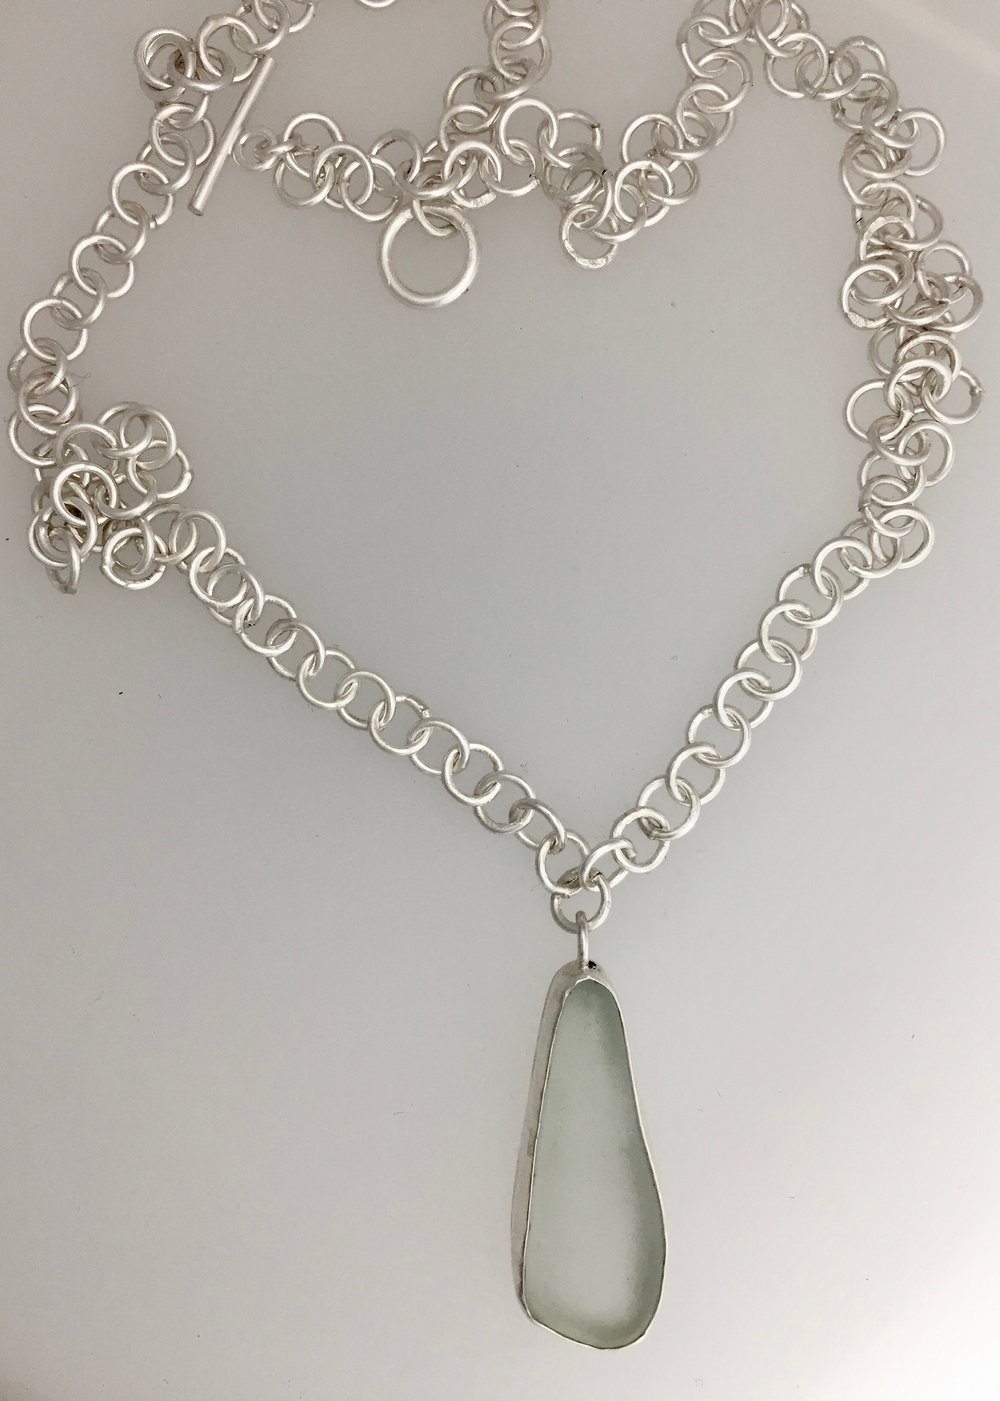 Sea Glass and SIlver Chain.jpg